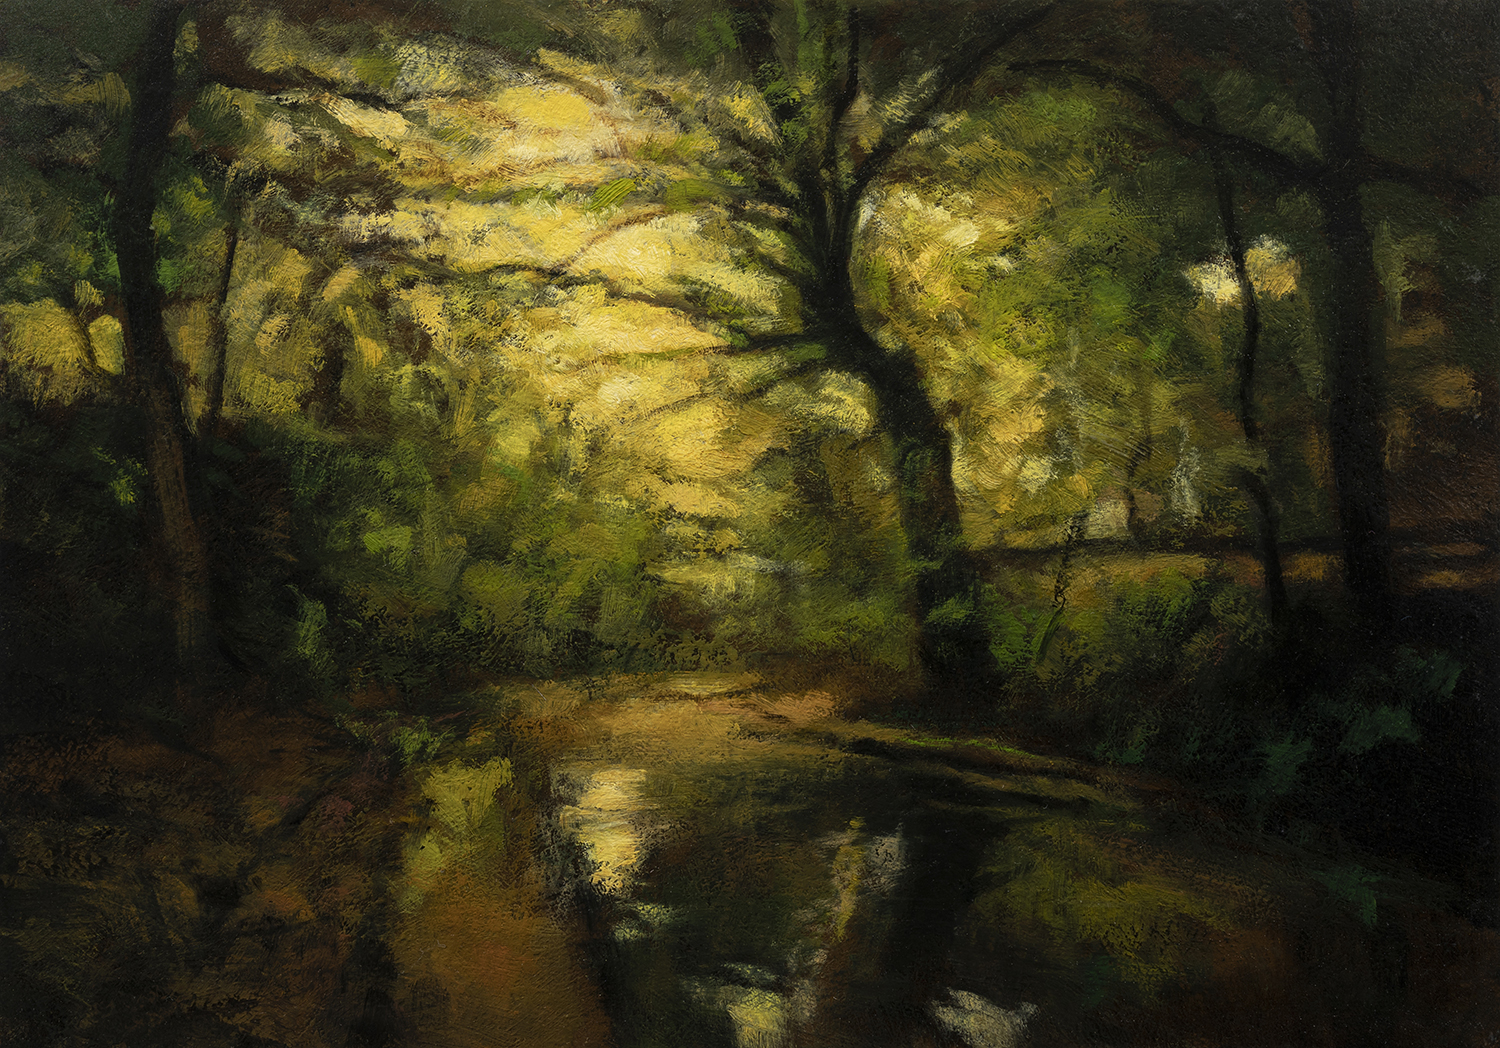 Twilight Woods by M Francis McCarthy -7x10 Oil on Wood Panel